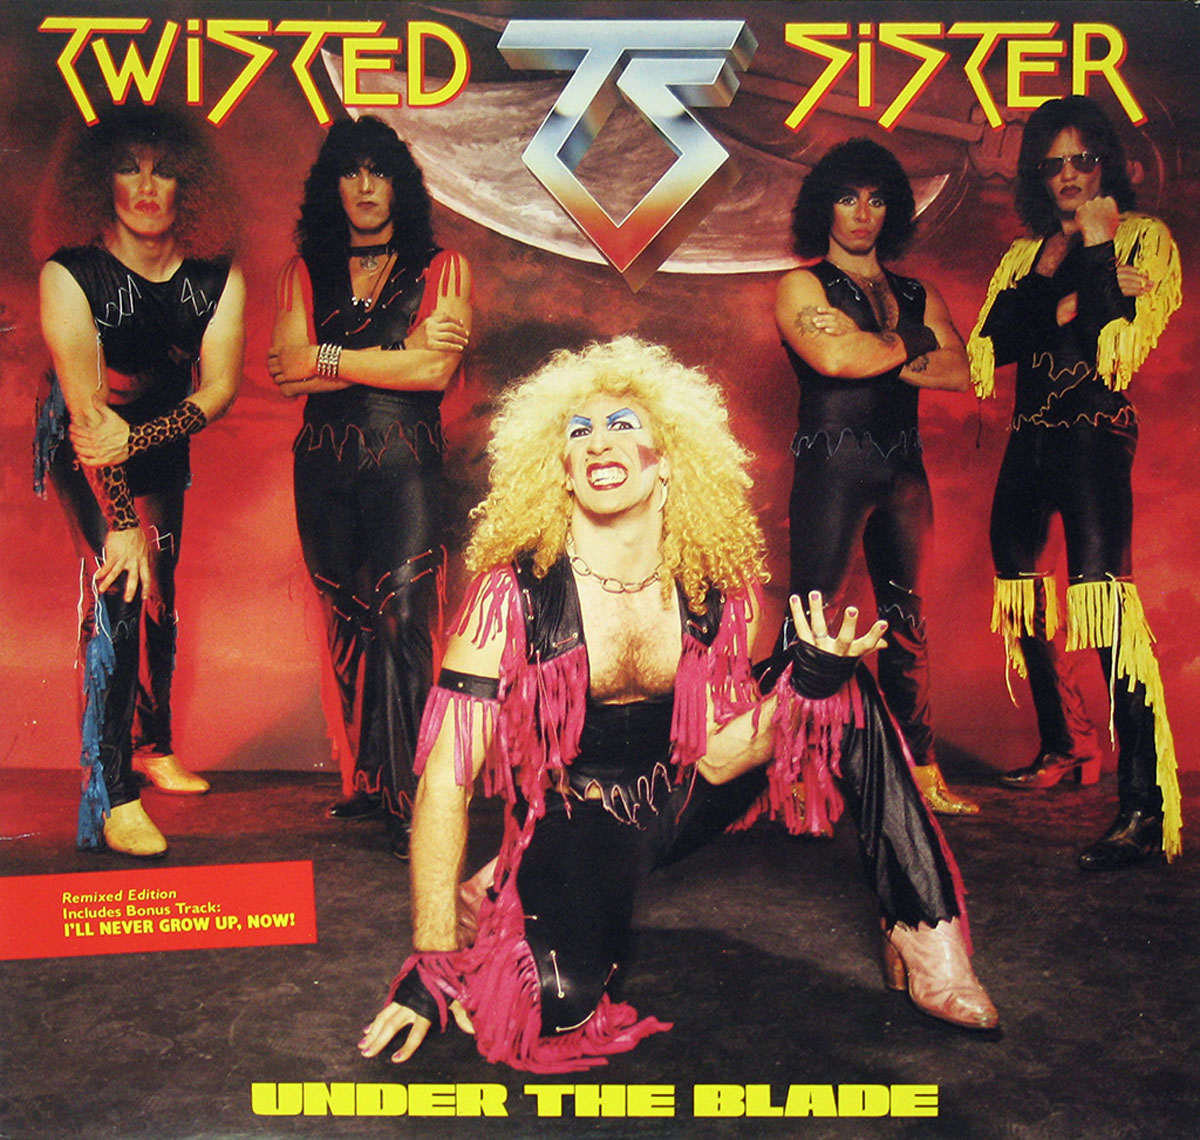 High Resolution Photos of twisted sister under blade canada